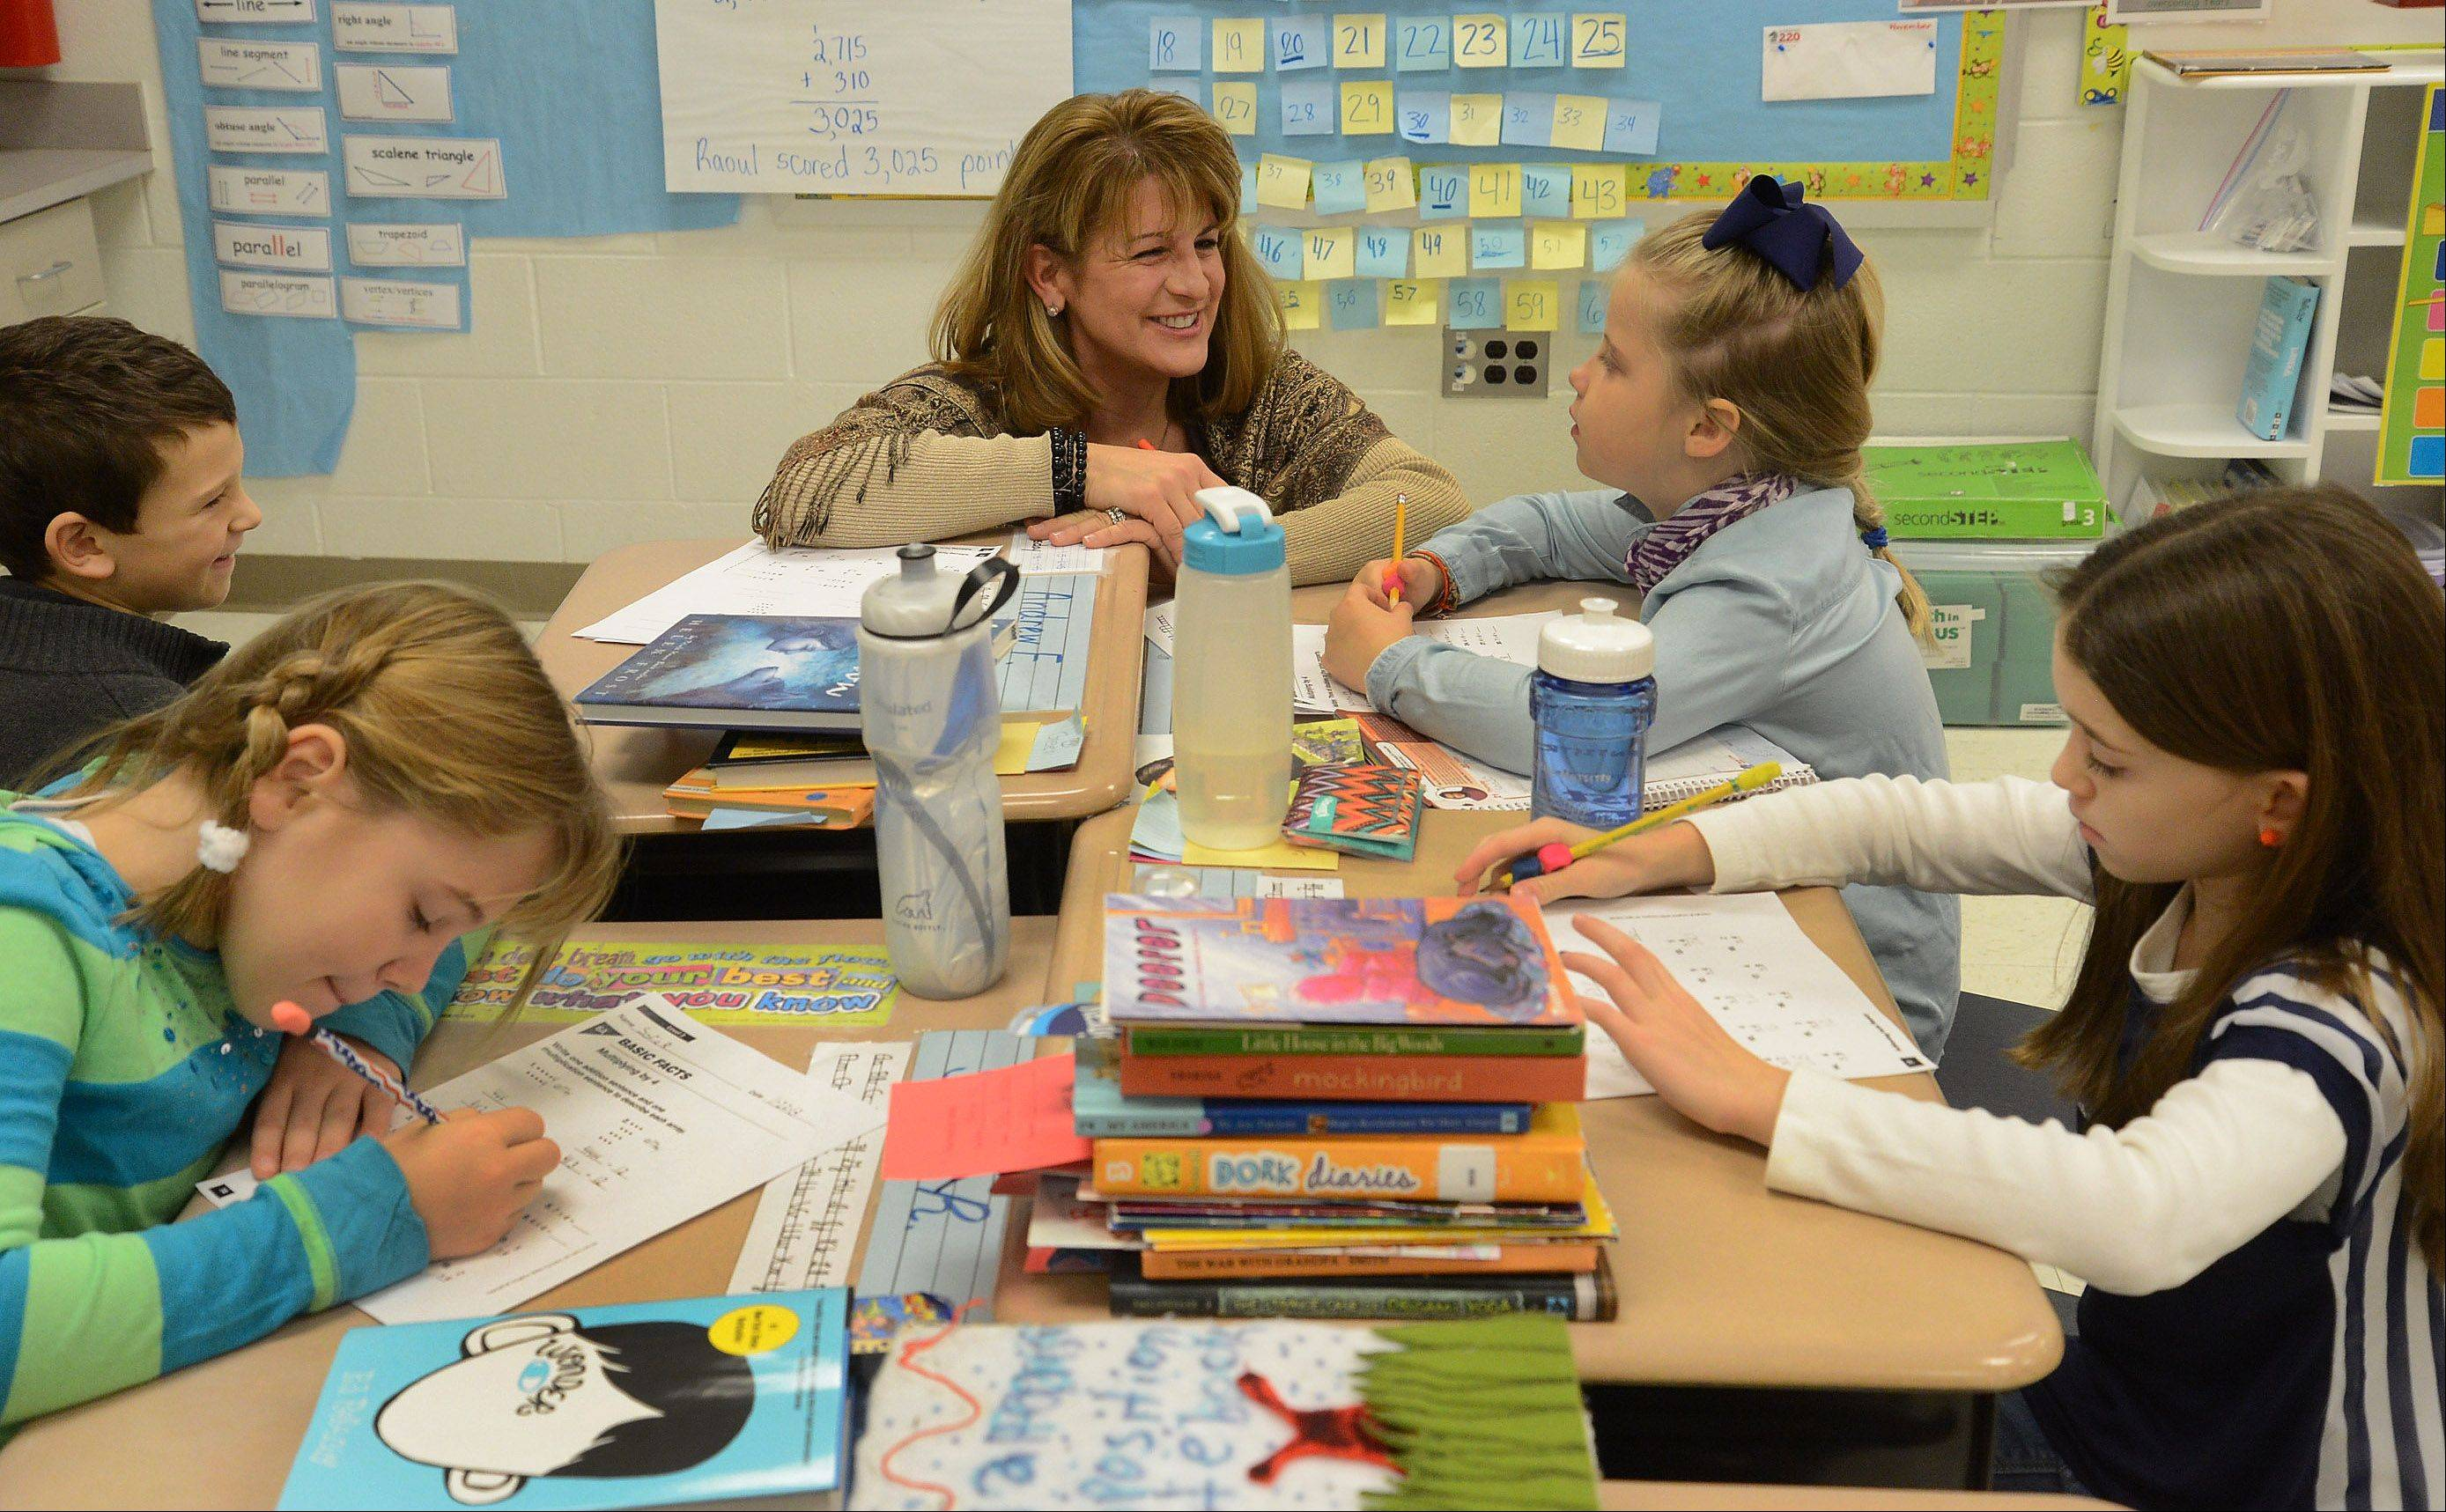 Lauren Gilleland works with her 3rd grade students at Roslyn Road Elementary School in Barrington, which won a National Blue Ribbon Award this year.